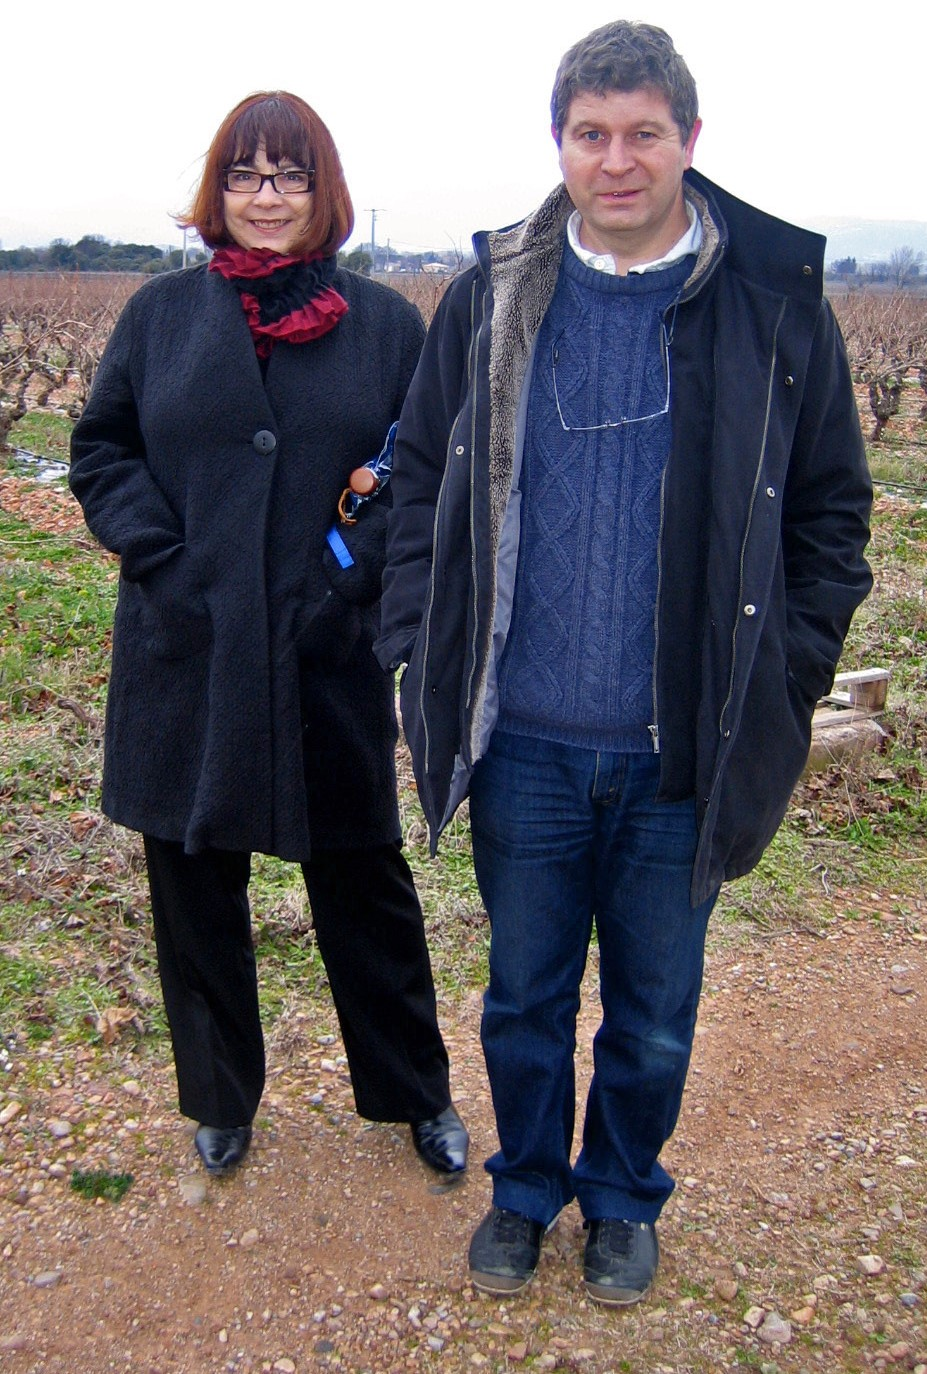 Charles Pacaud and Hélène